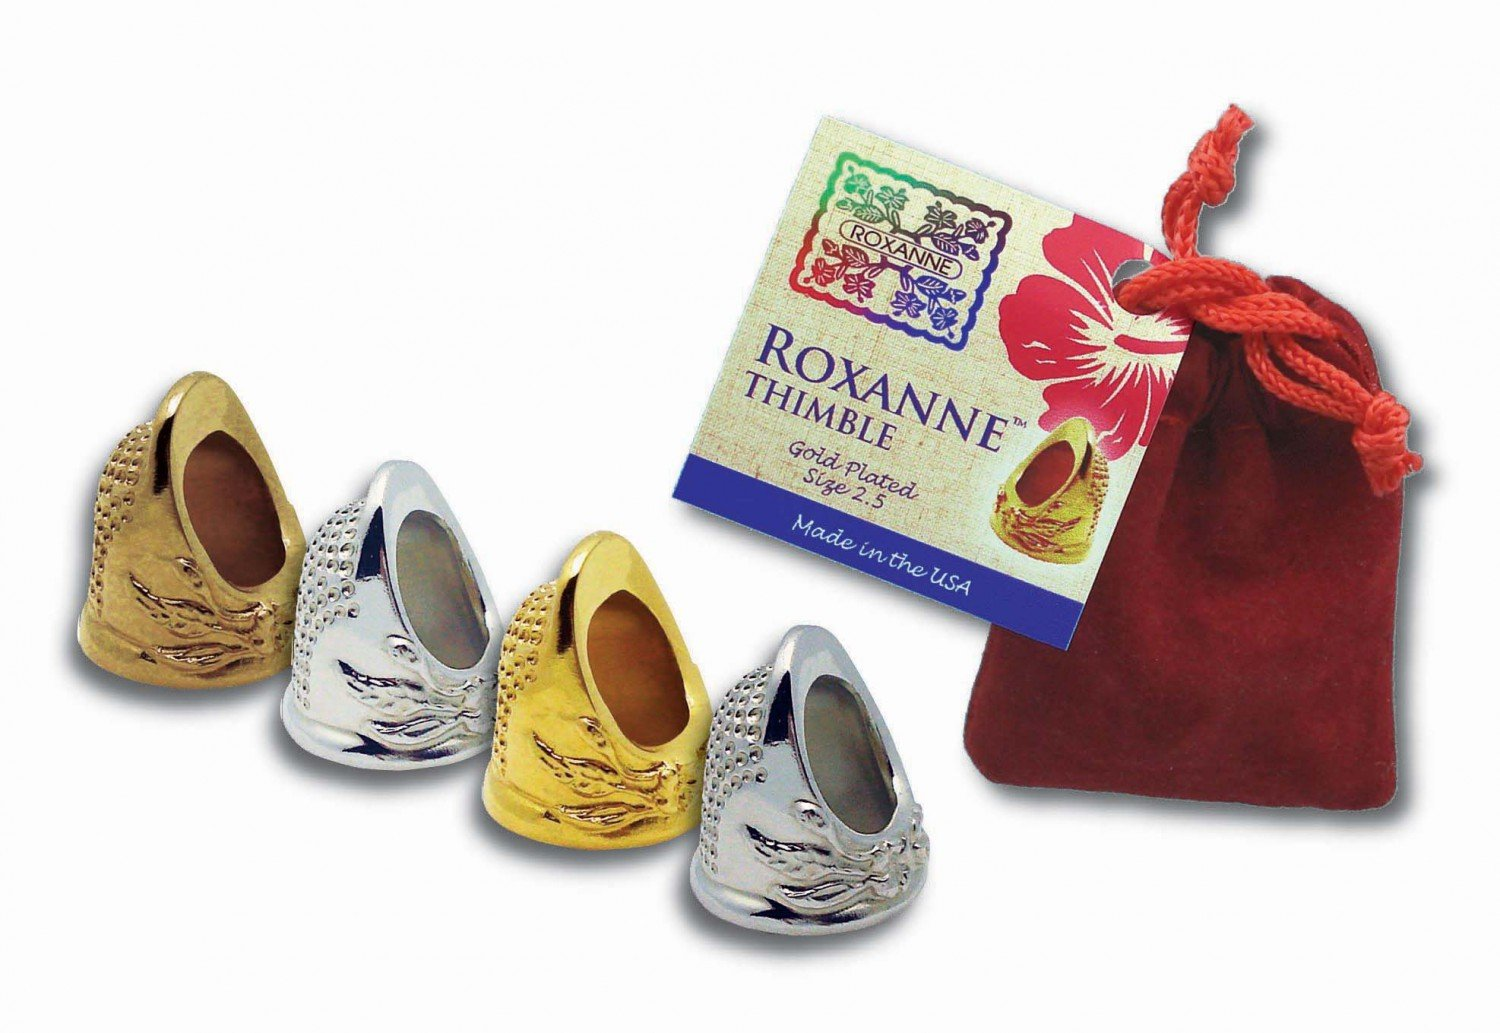 Roxanne Gold Plated Thimble Size 3